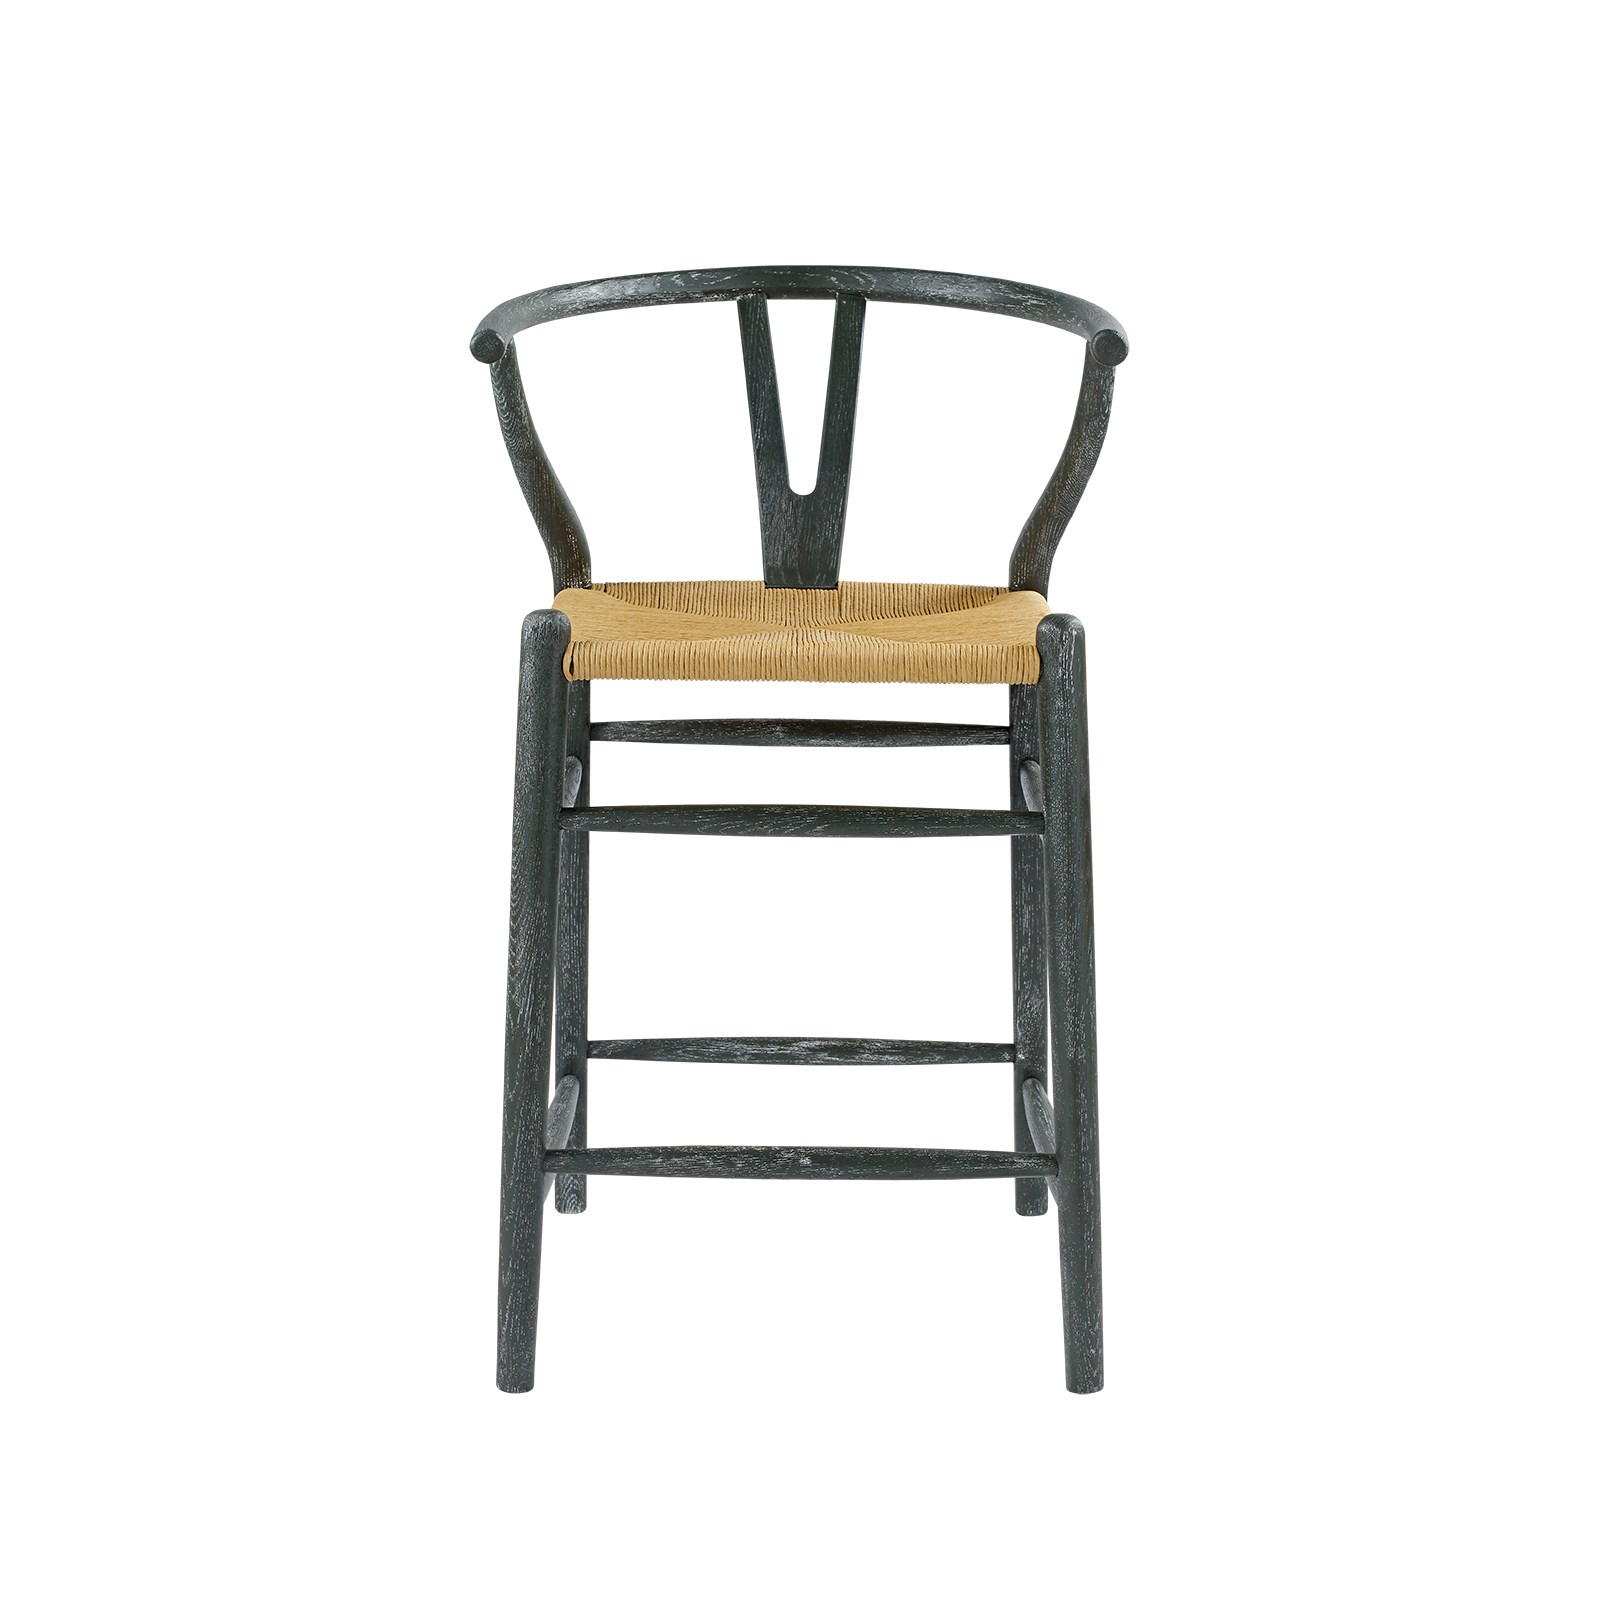 astonishing stools height perfect stool leather ideas bar counter grey chairs large pic gray charming